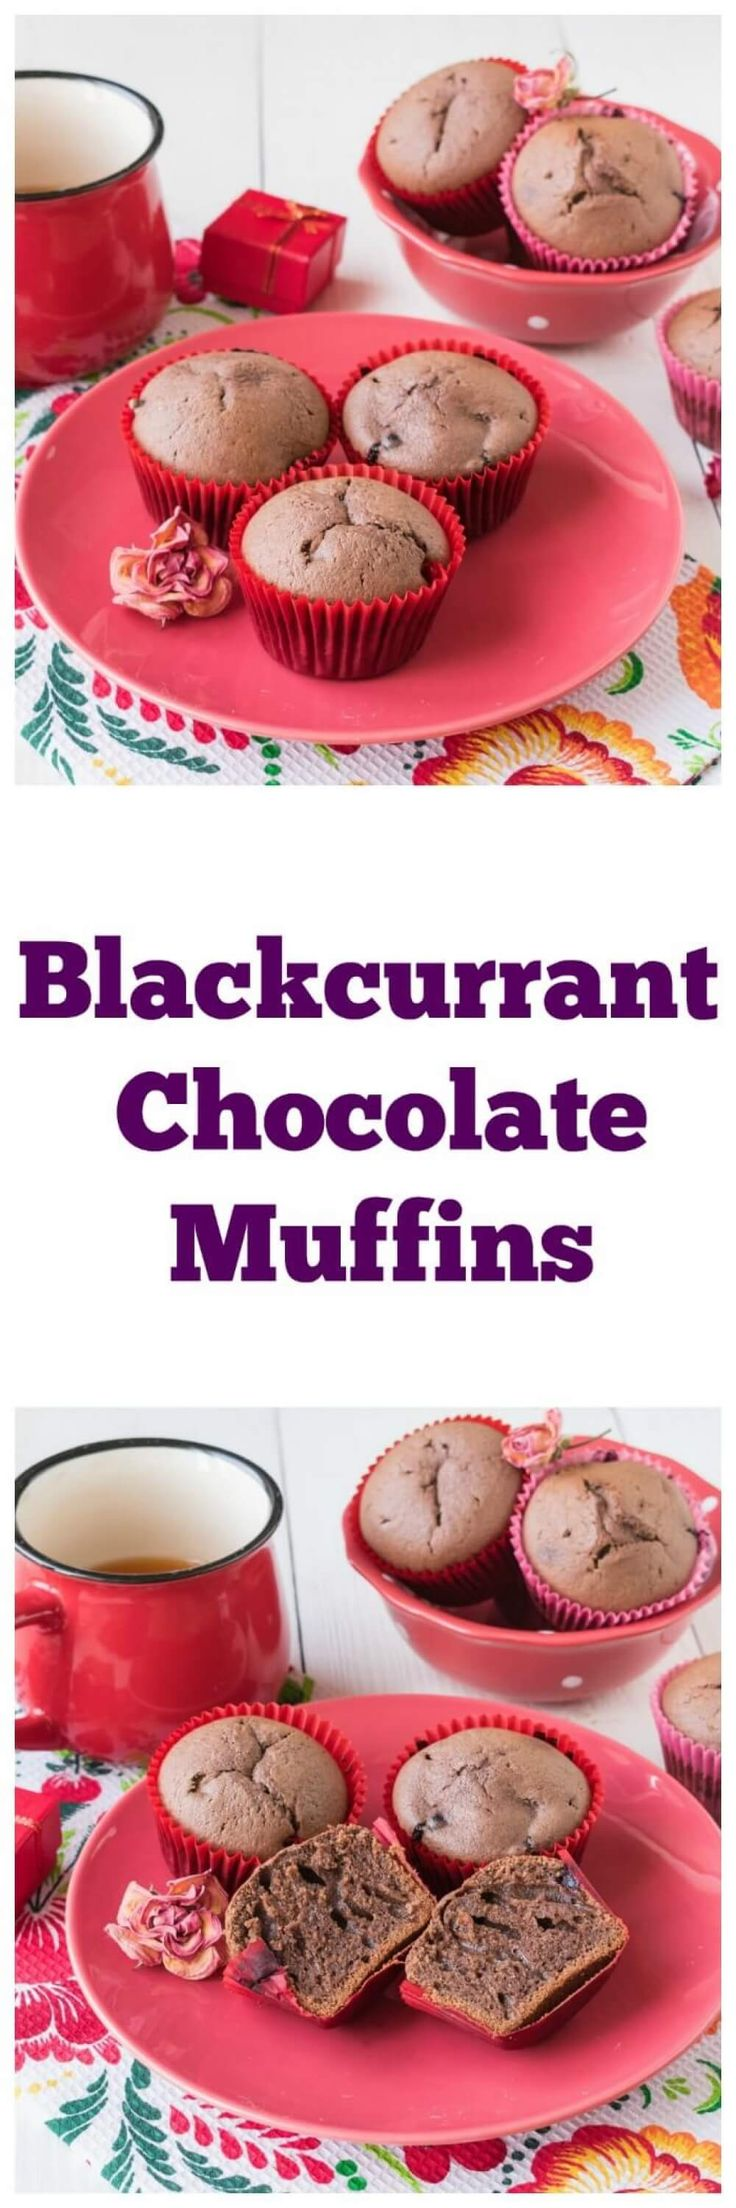 Blackcurrant Chocolate Muffins